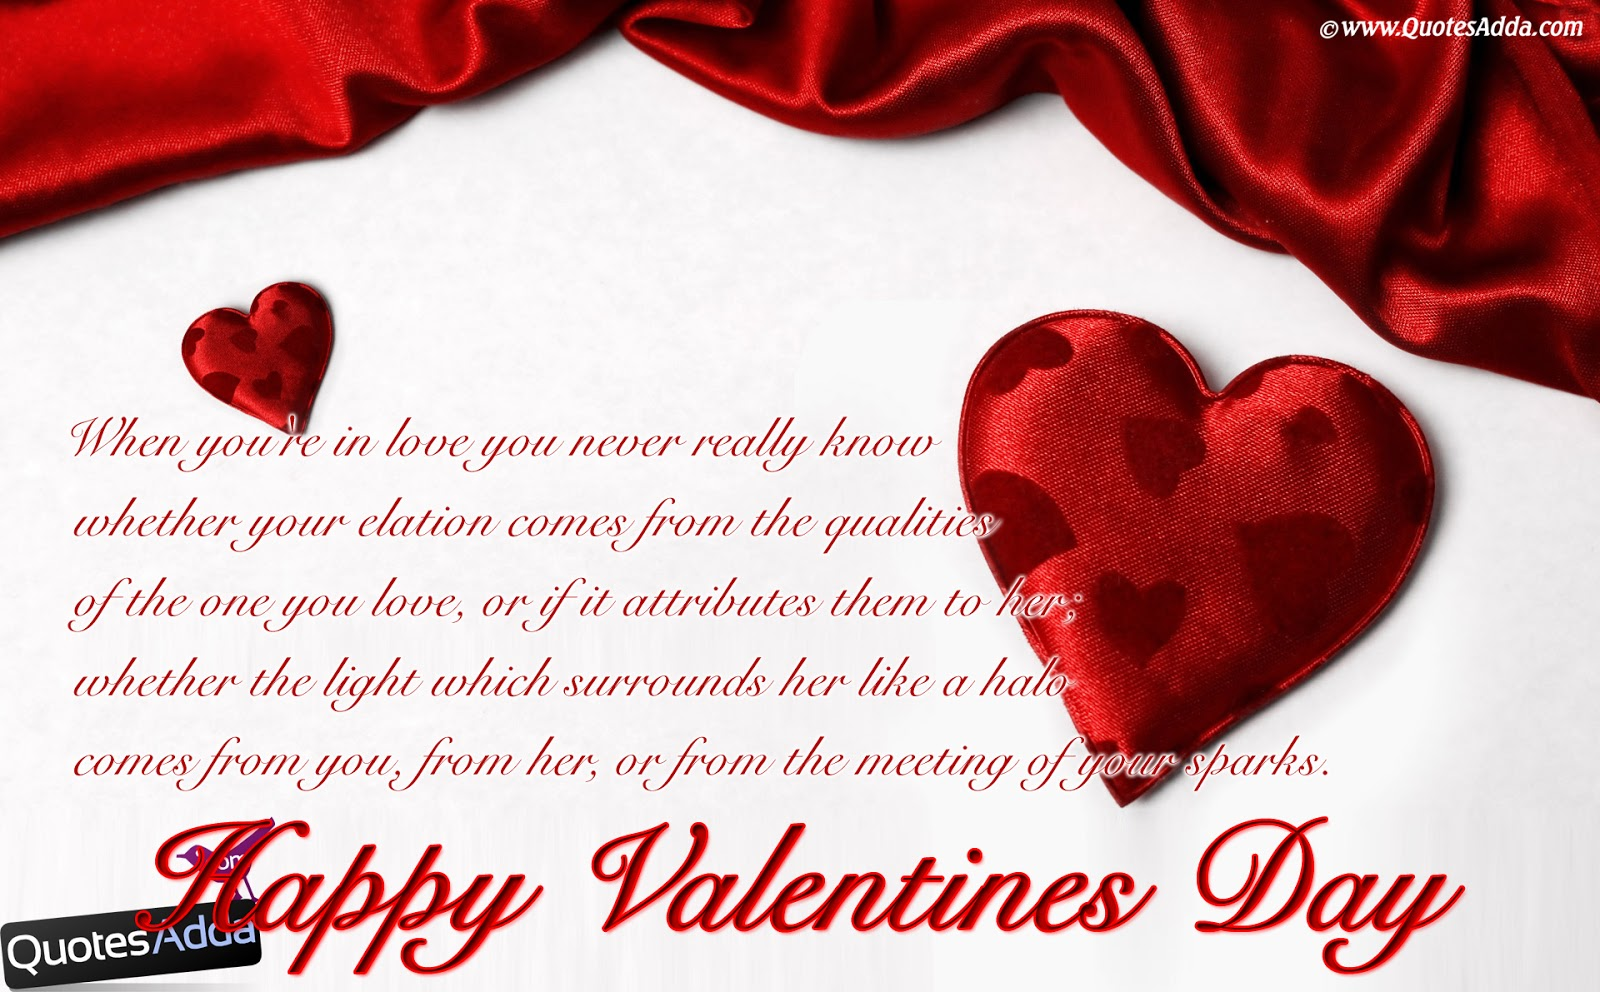 Sad valentines day quotes quotesgram for Quotes on valentine day